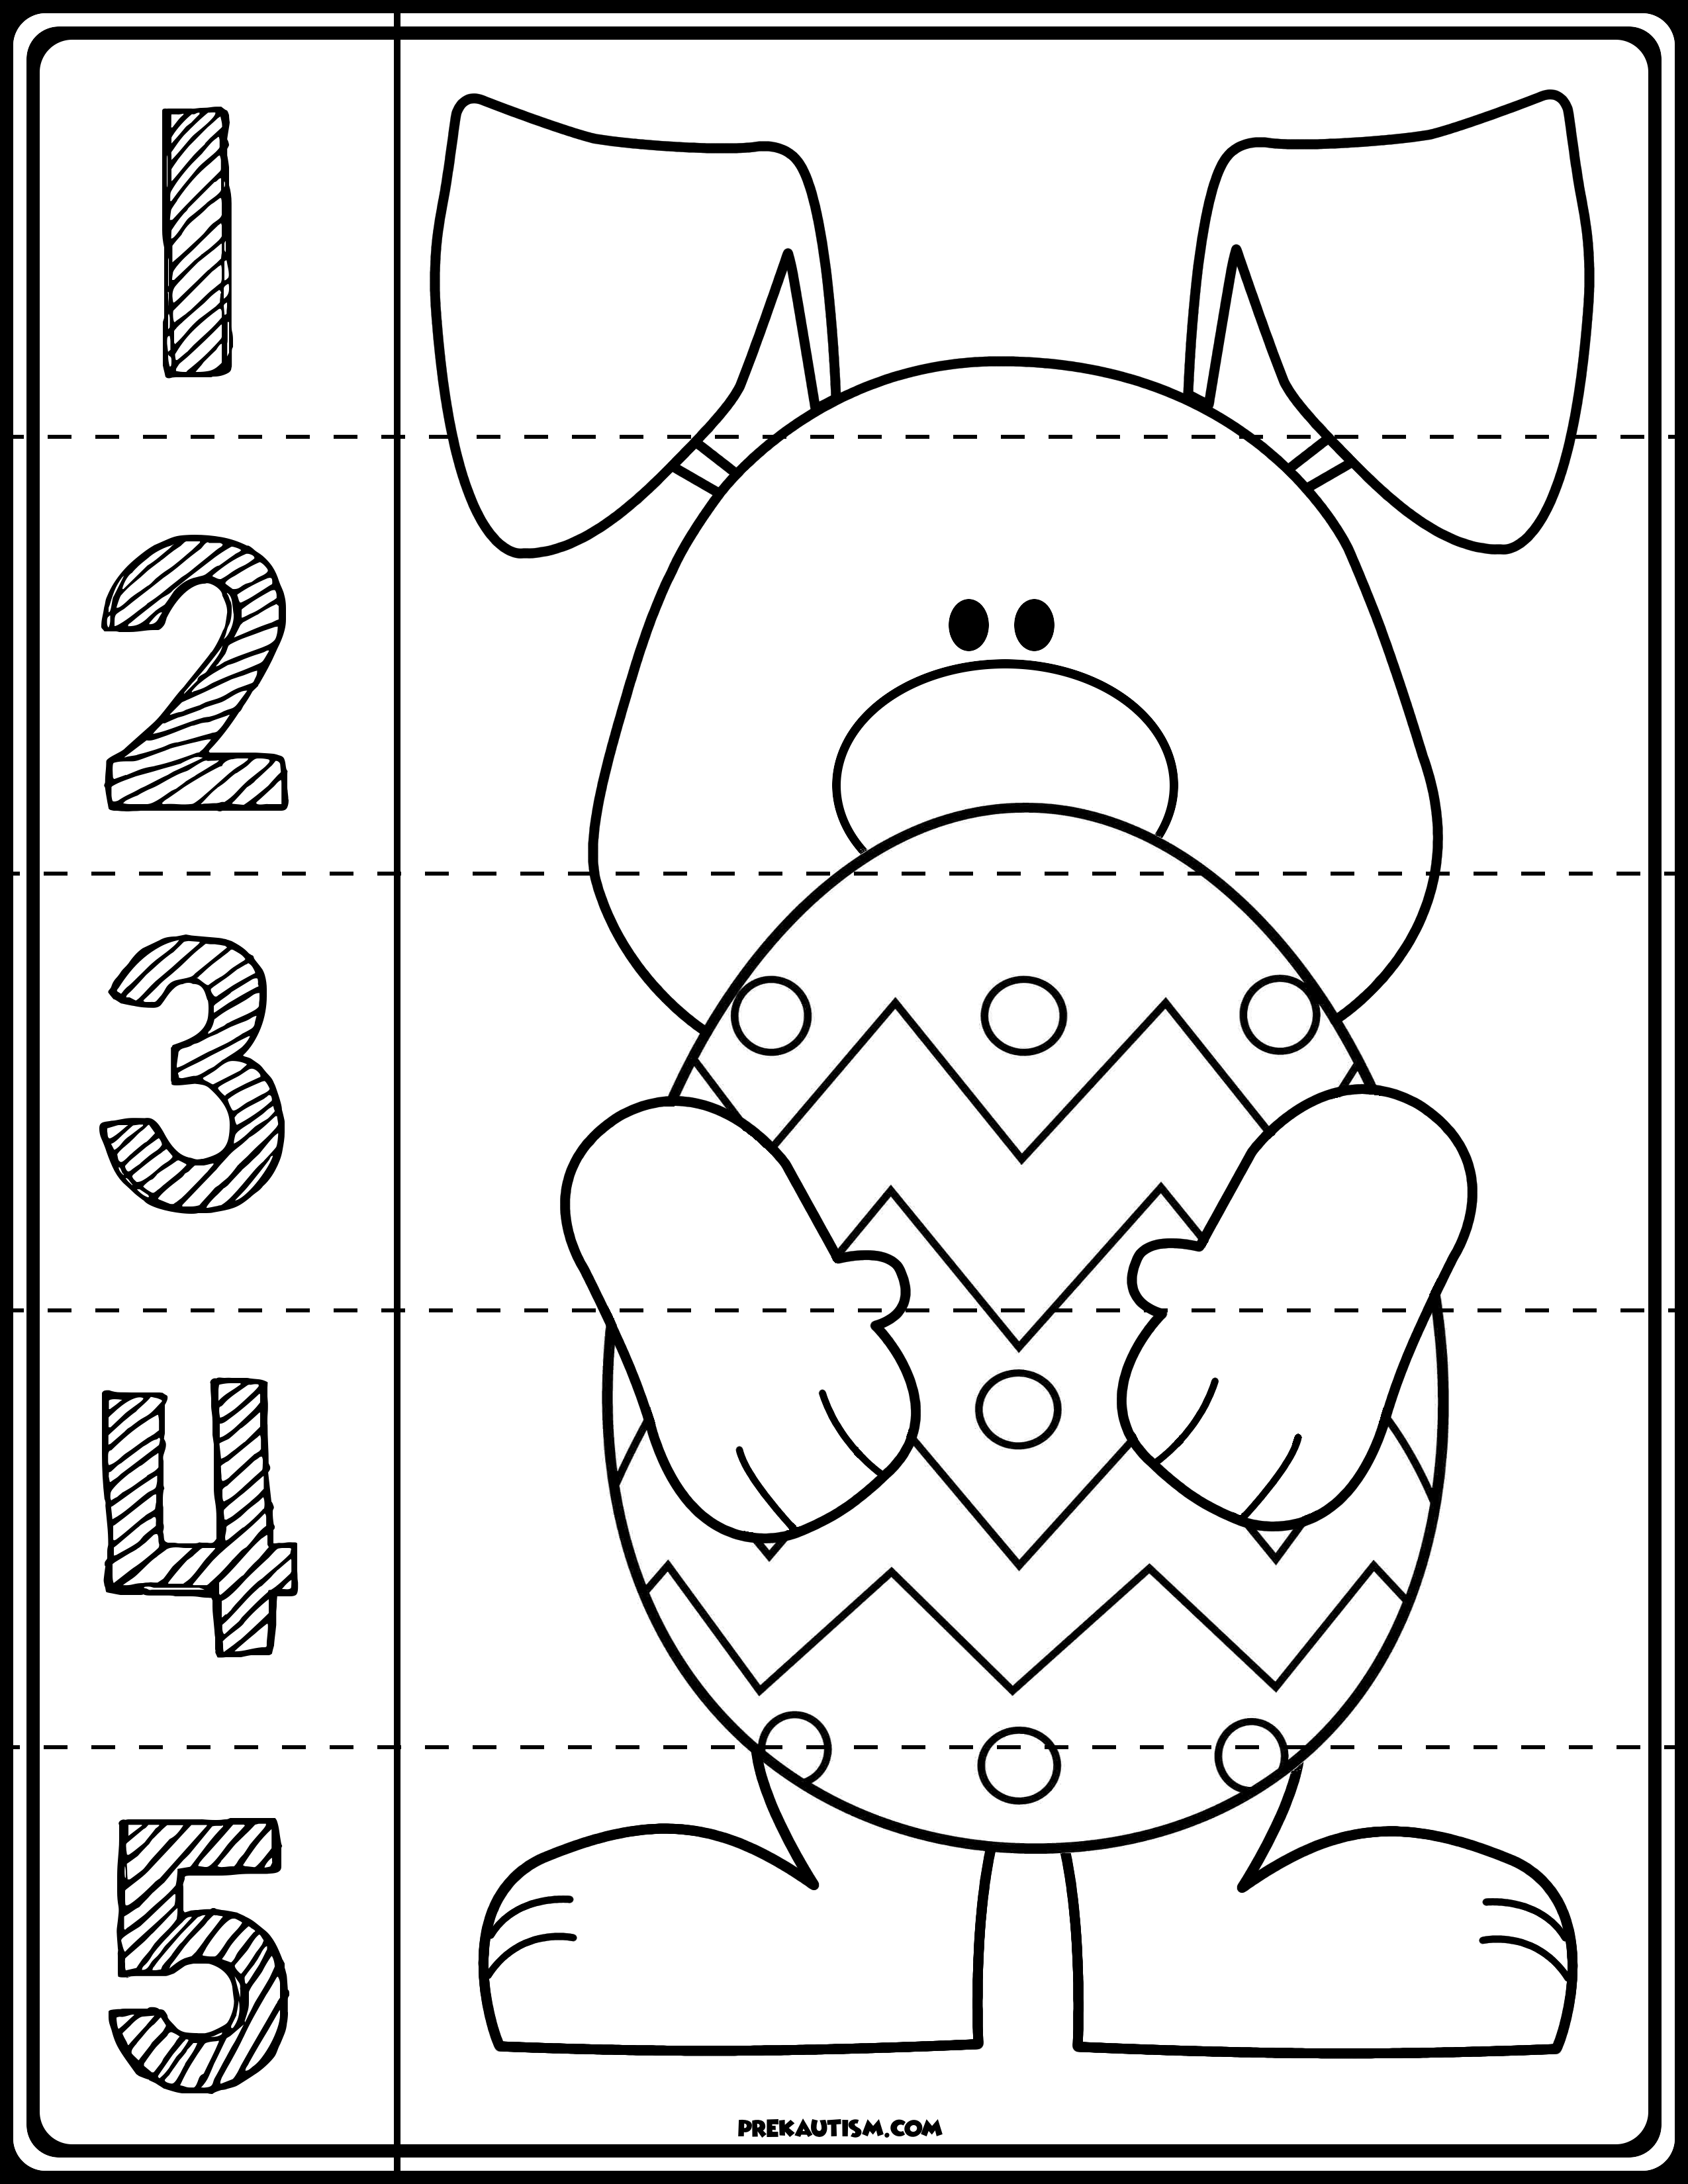 Easter Bunny Line Puzzles